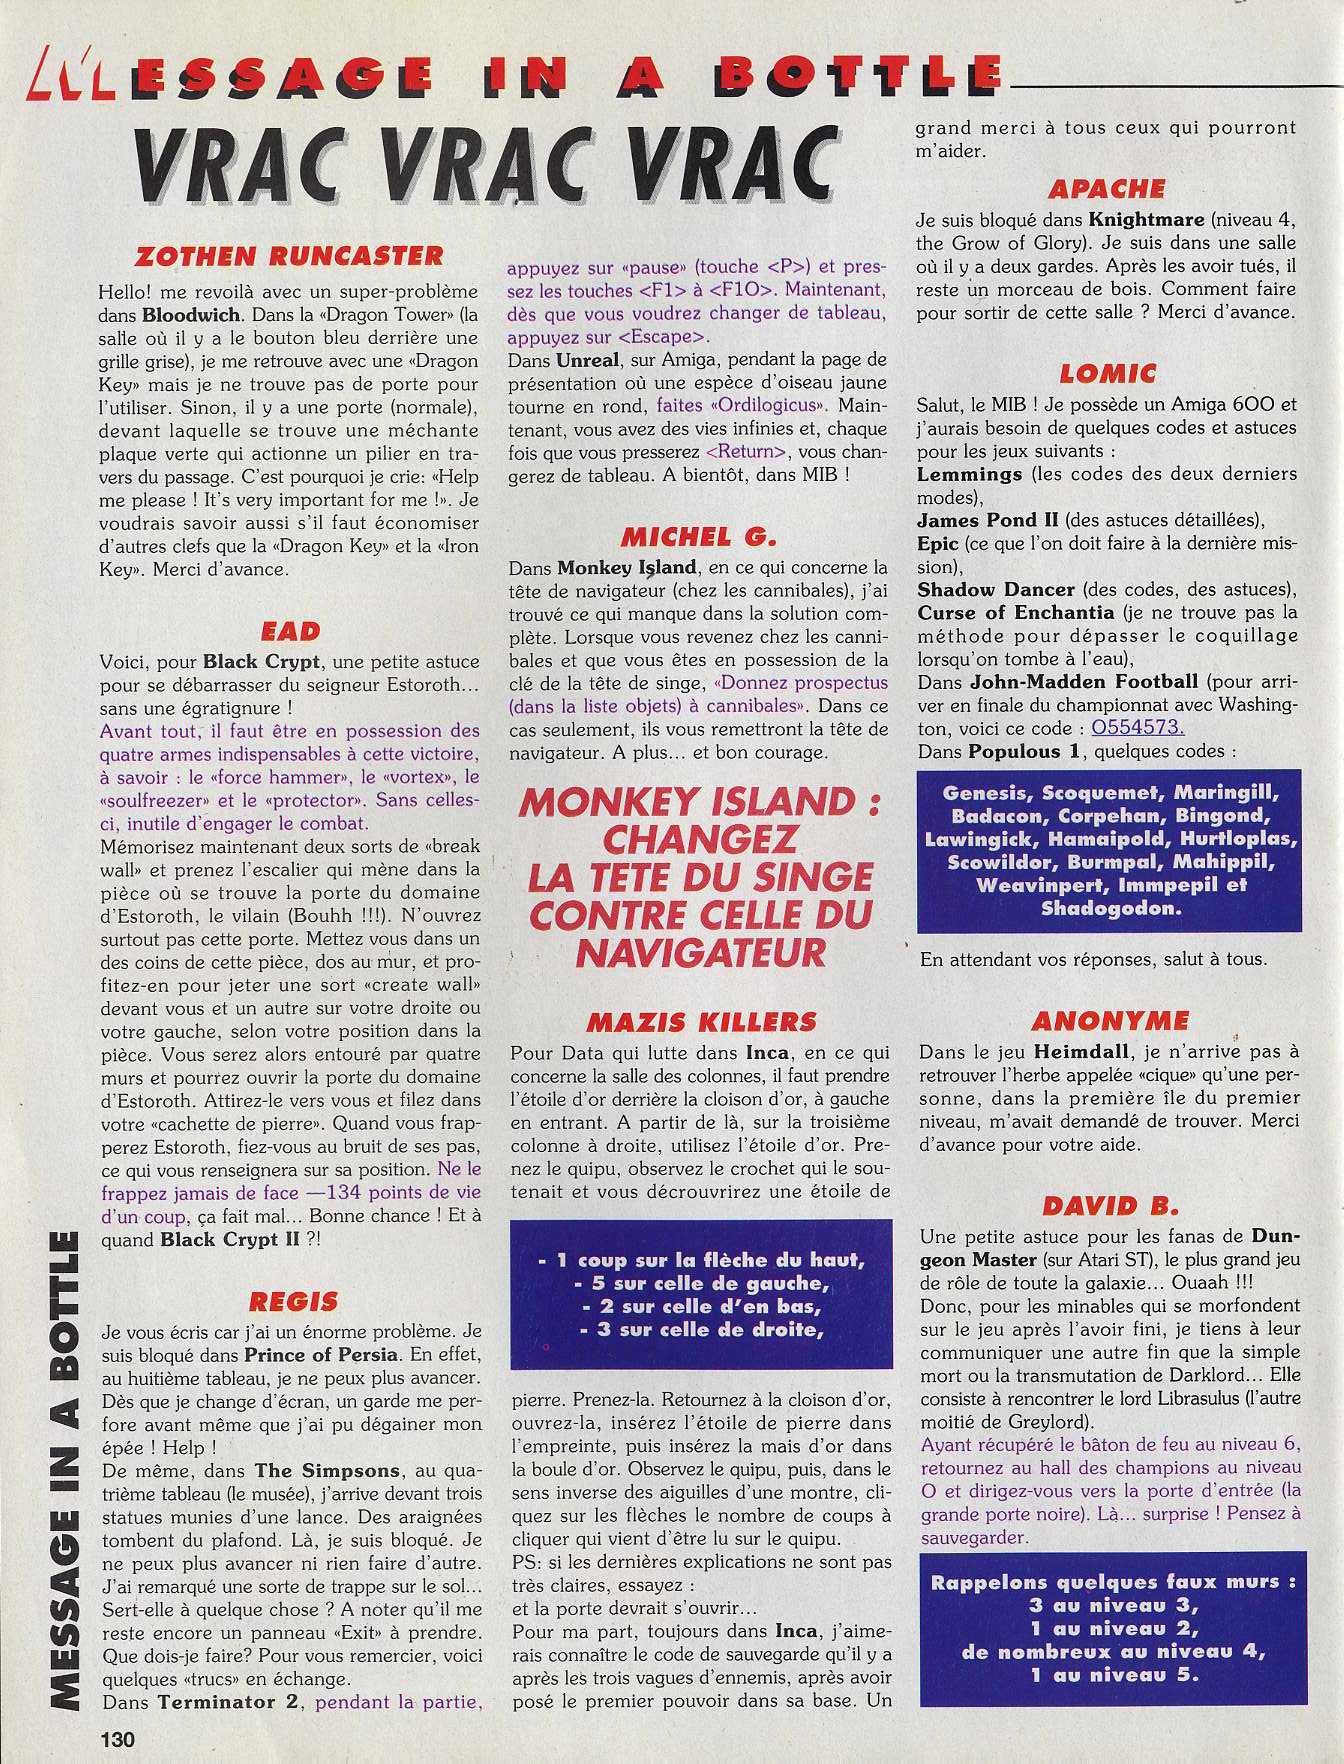 Dungeon Master Hints published in French magazine 'Tilt', Issue #115, June 1993, Page 130